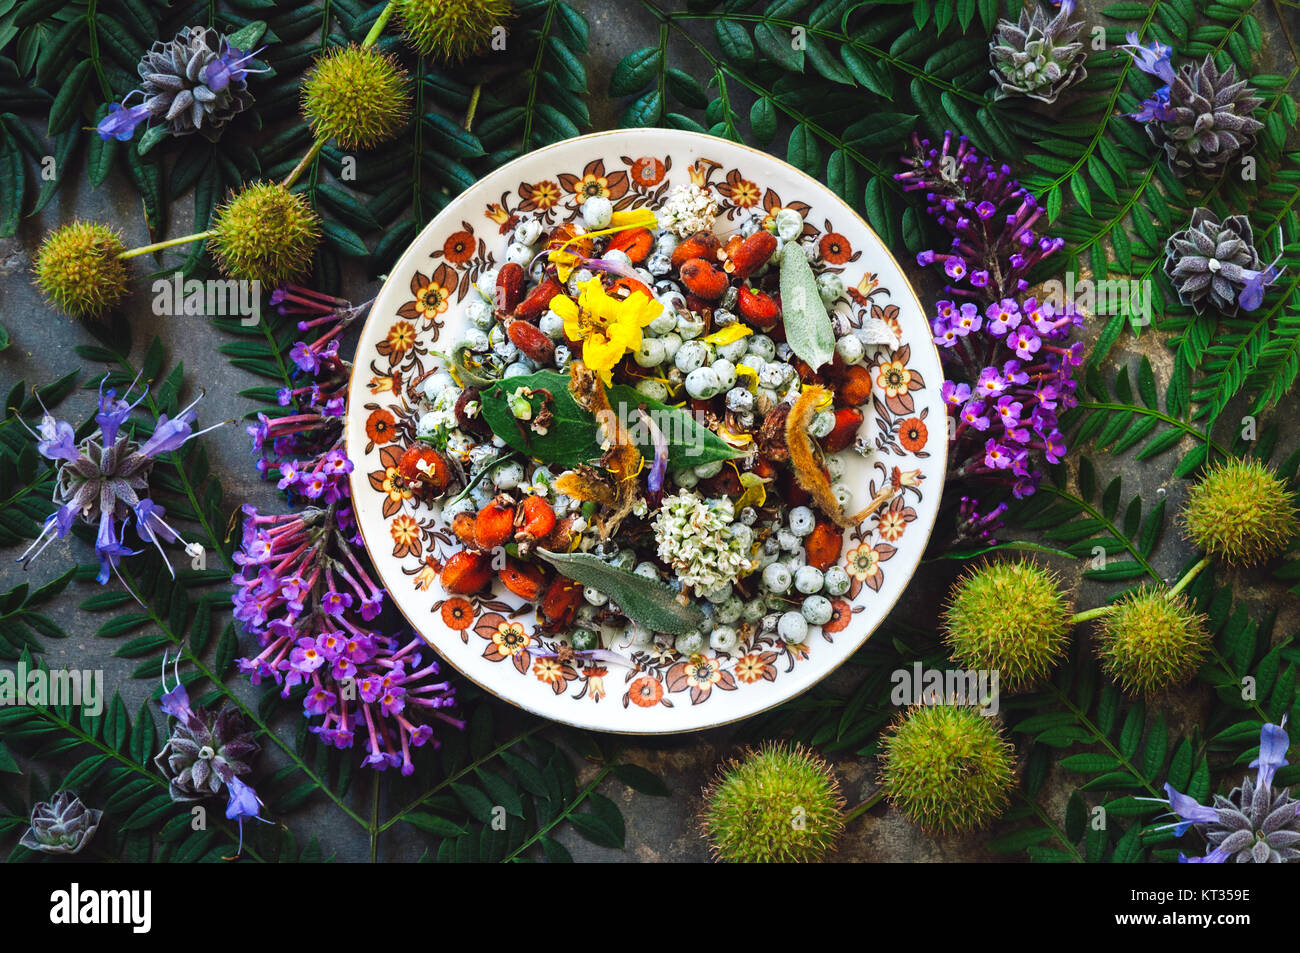 Mixed Flowers and Seeds on a Bed of Flora - Stock Image